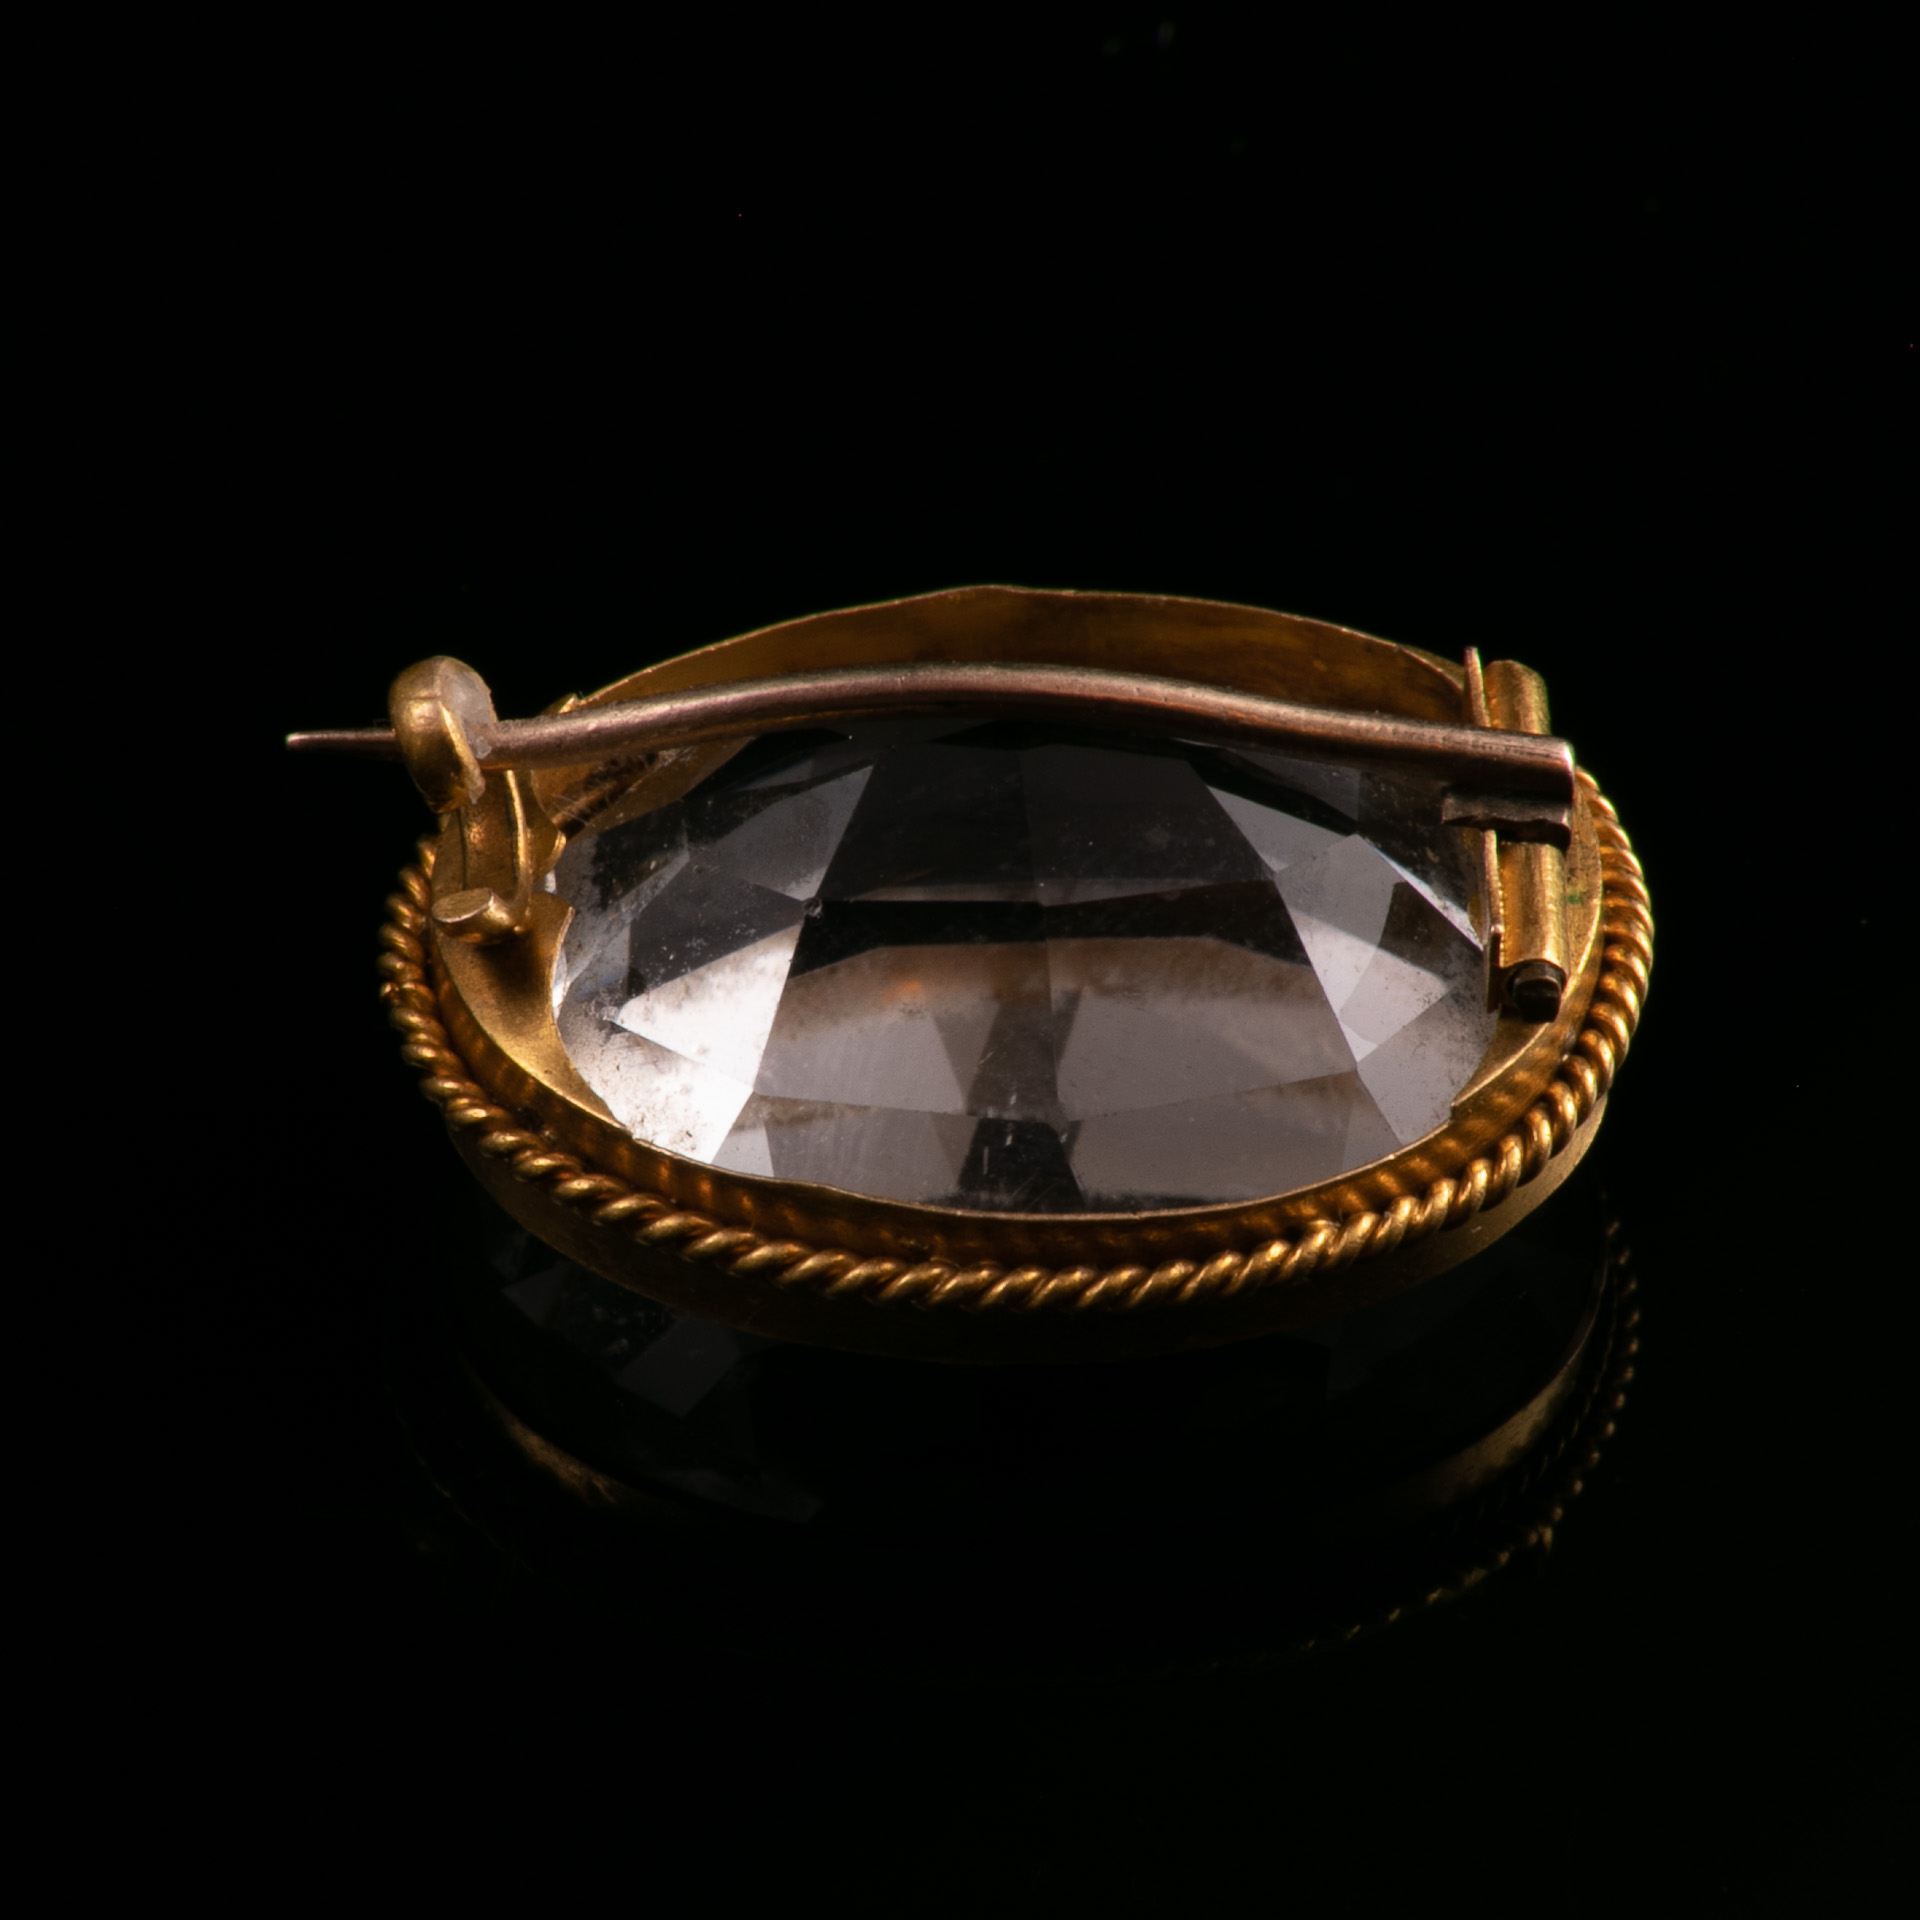 18ct Gold Victorian Faceted Rock Crystal Brooch - Image 5 of 5